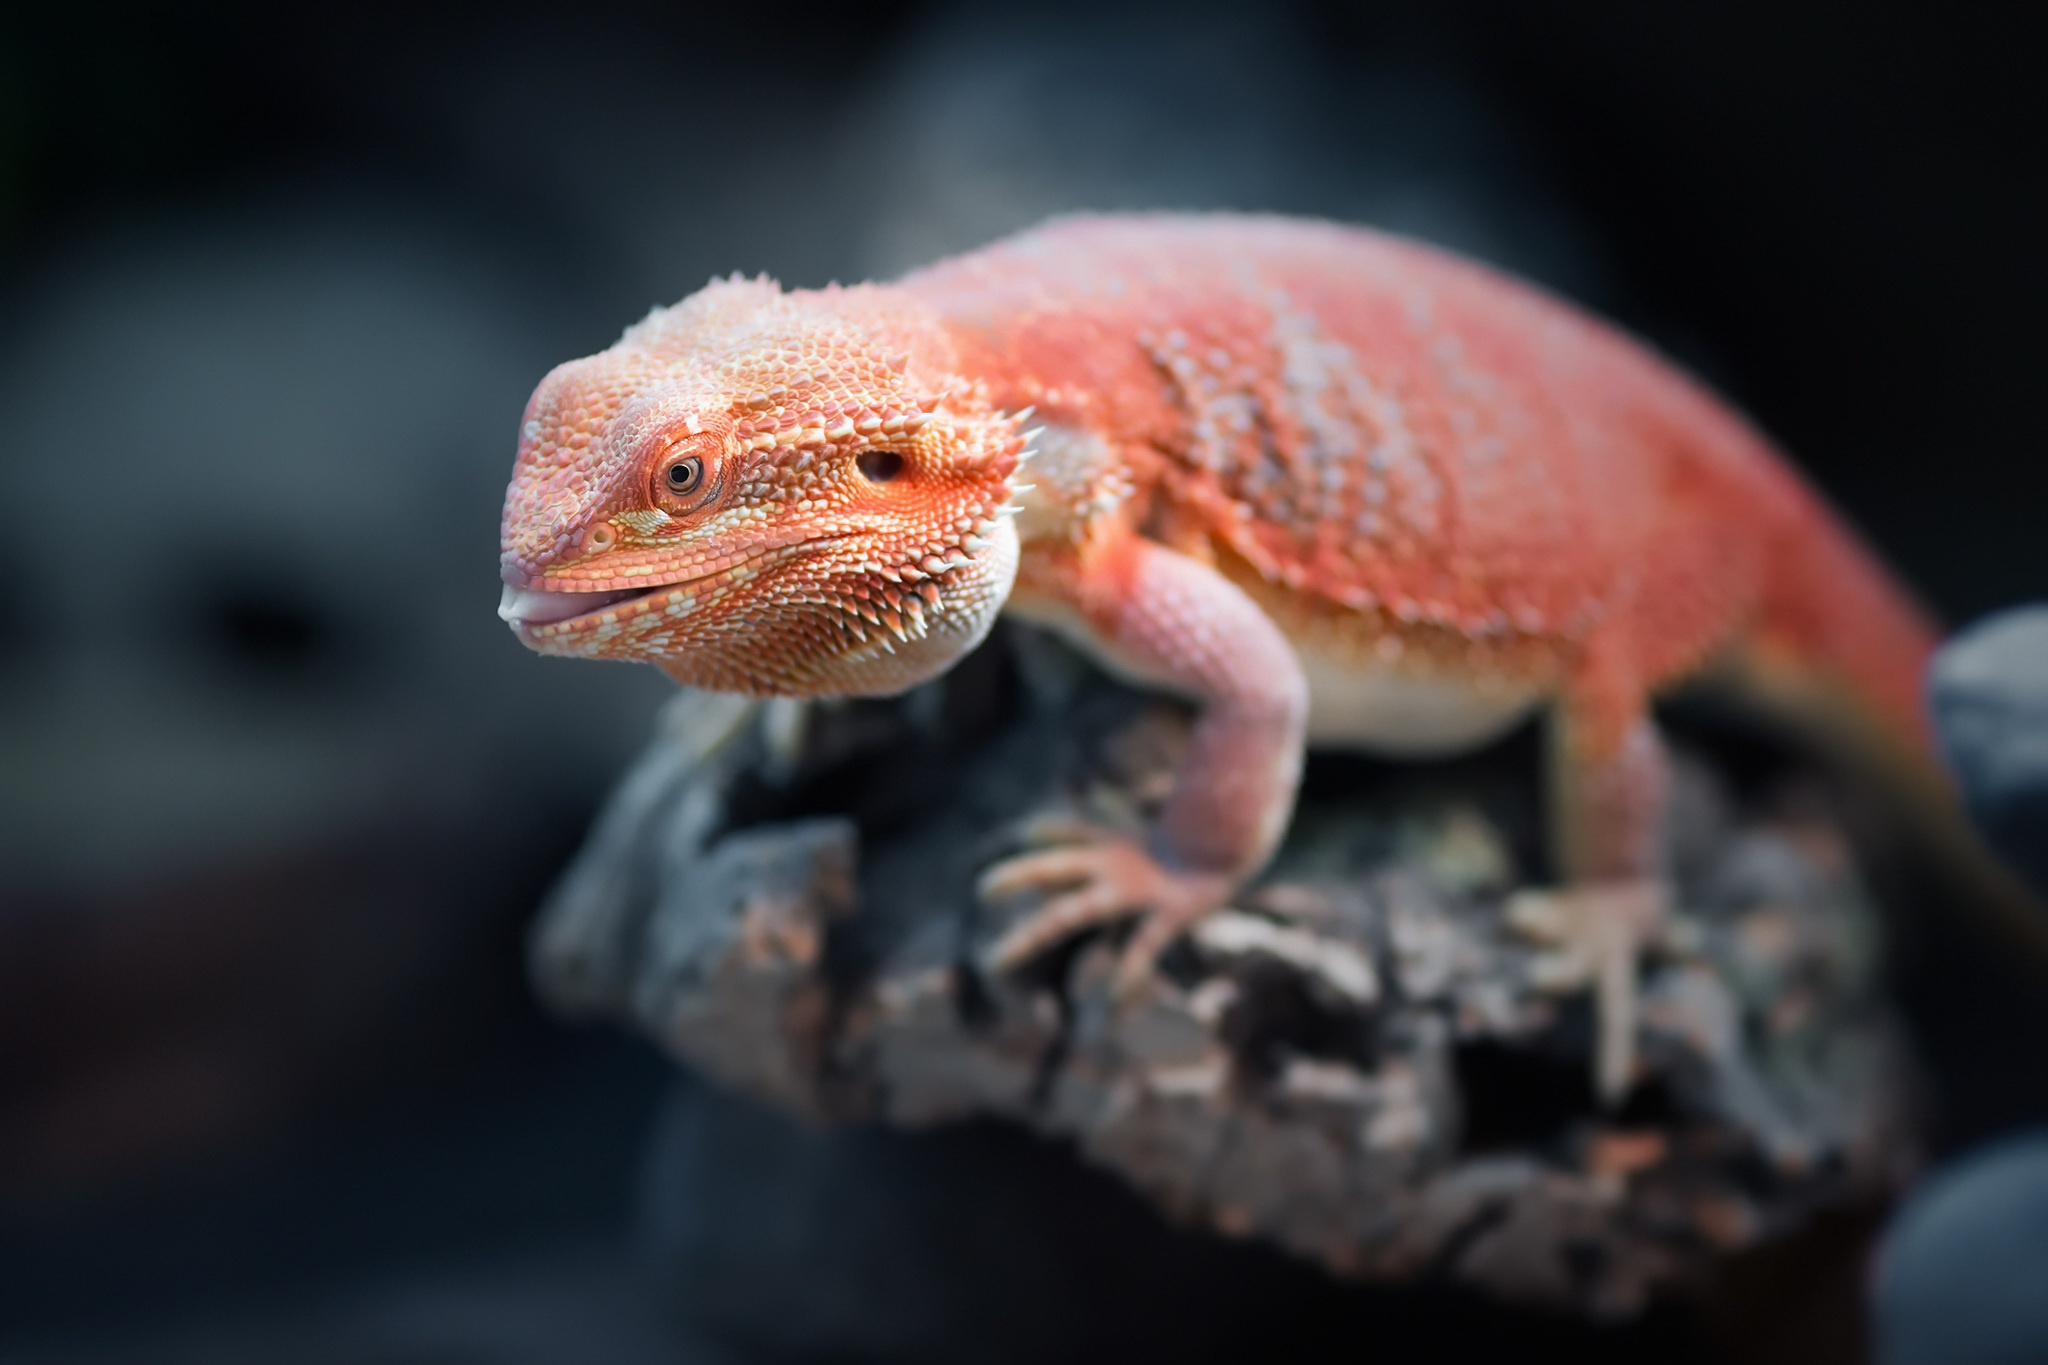 bearded lizard pictures - HD 2048×1365